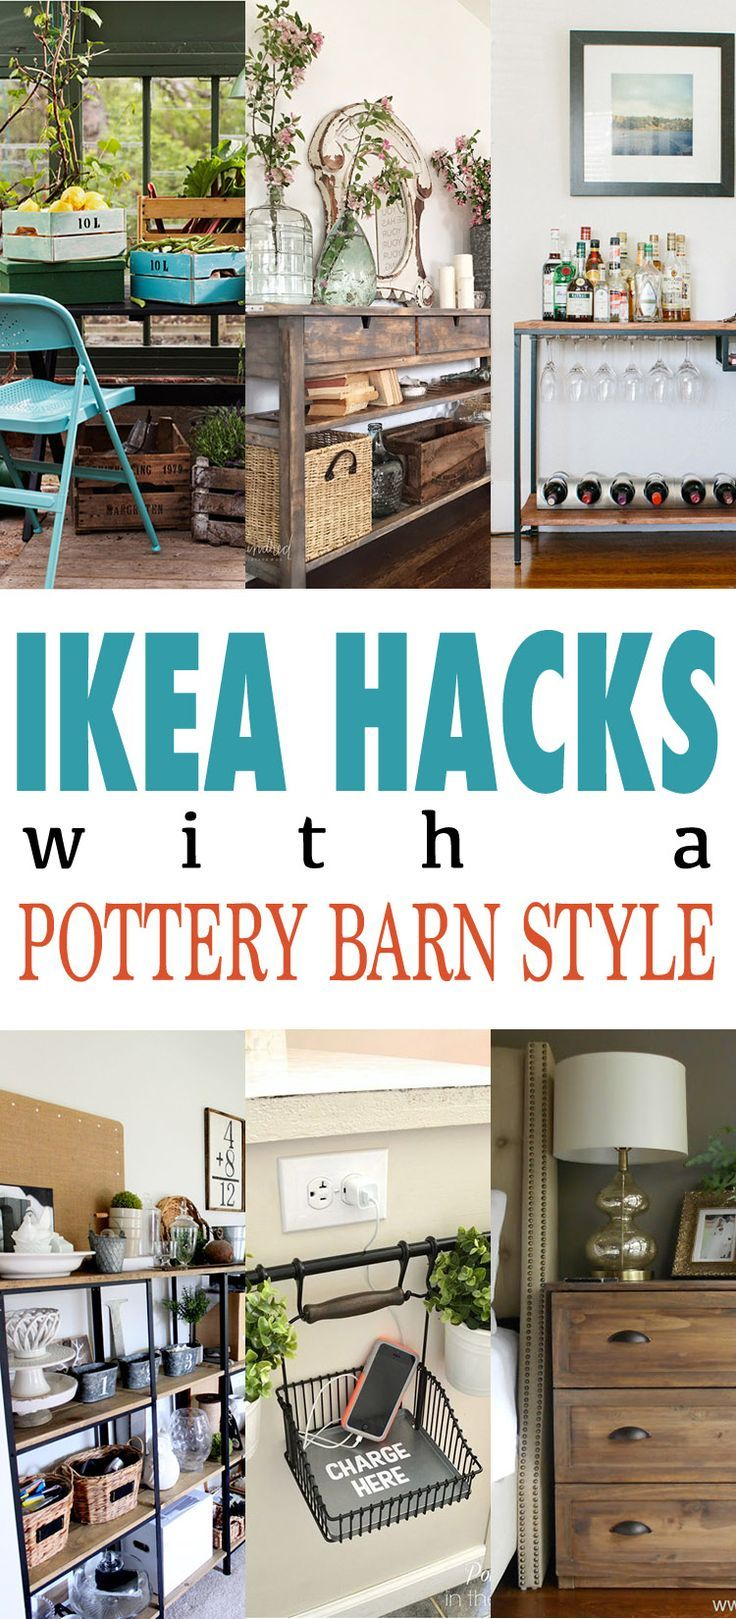 Ikea Hacks With A Pottery Barn Style Ikea Diy Ikea Und Ikea Hacks